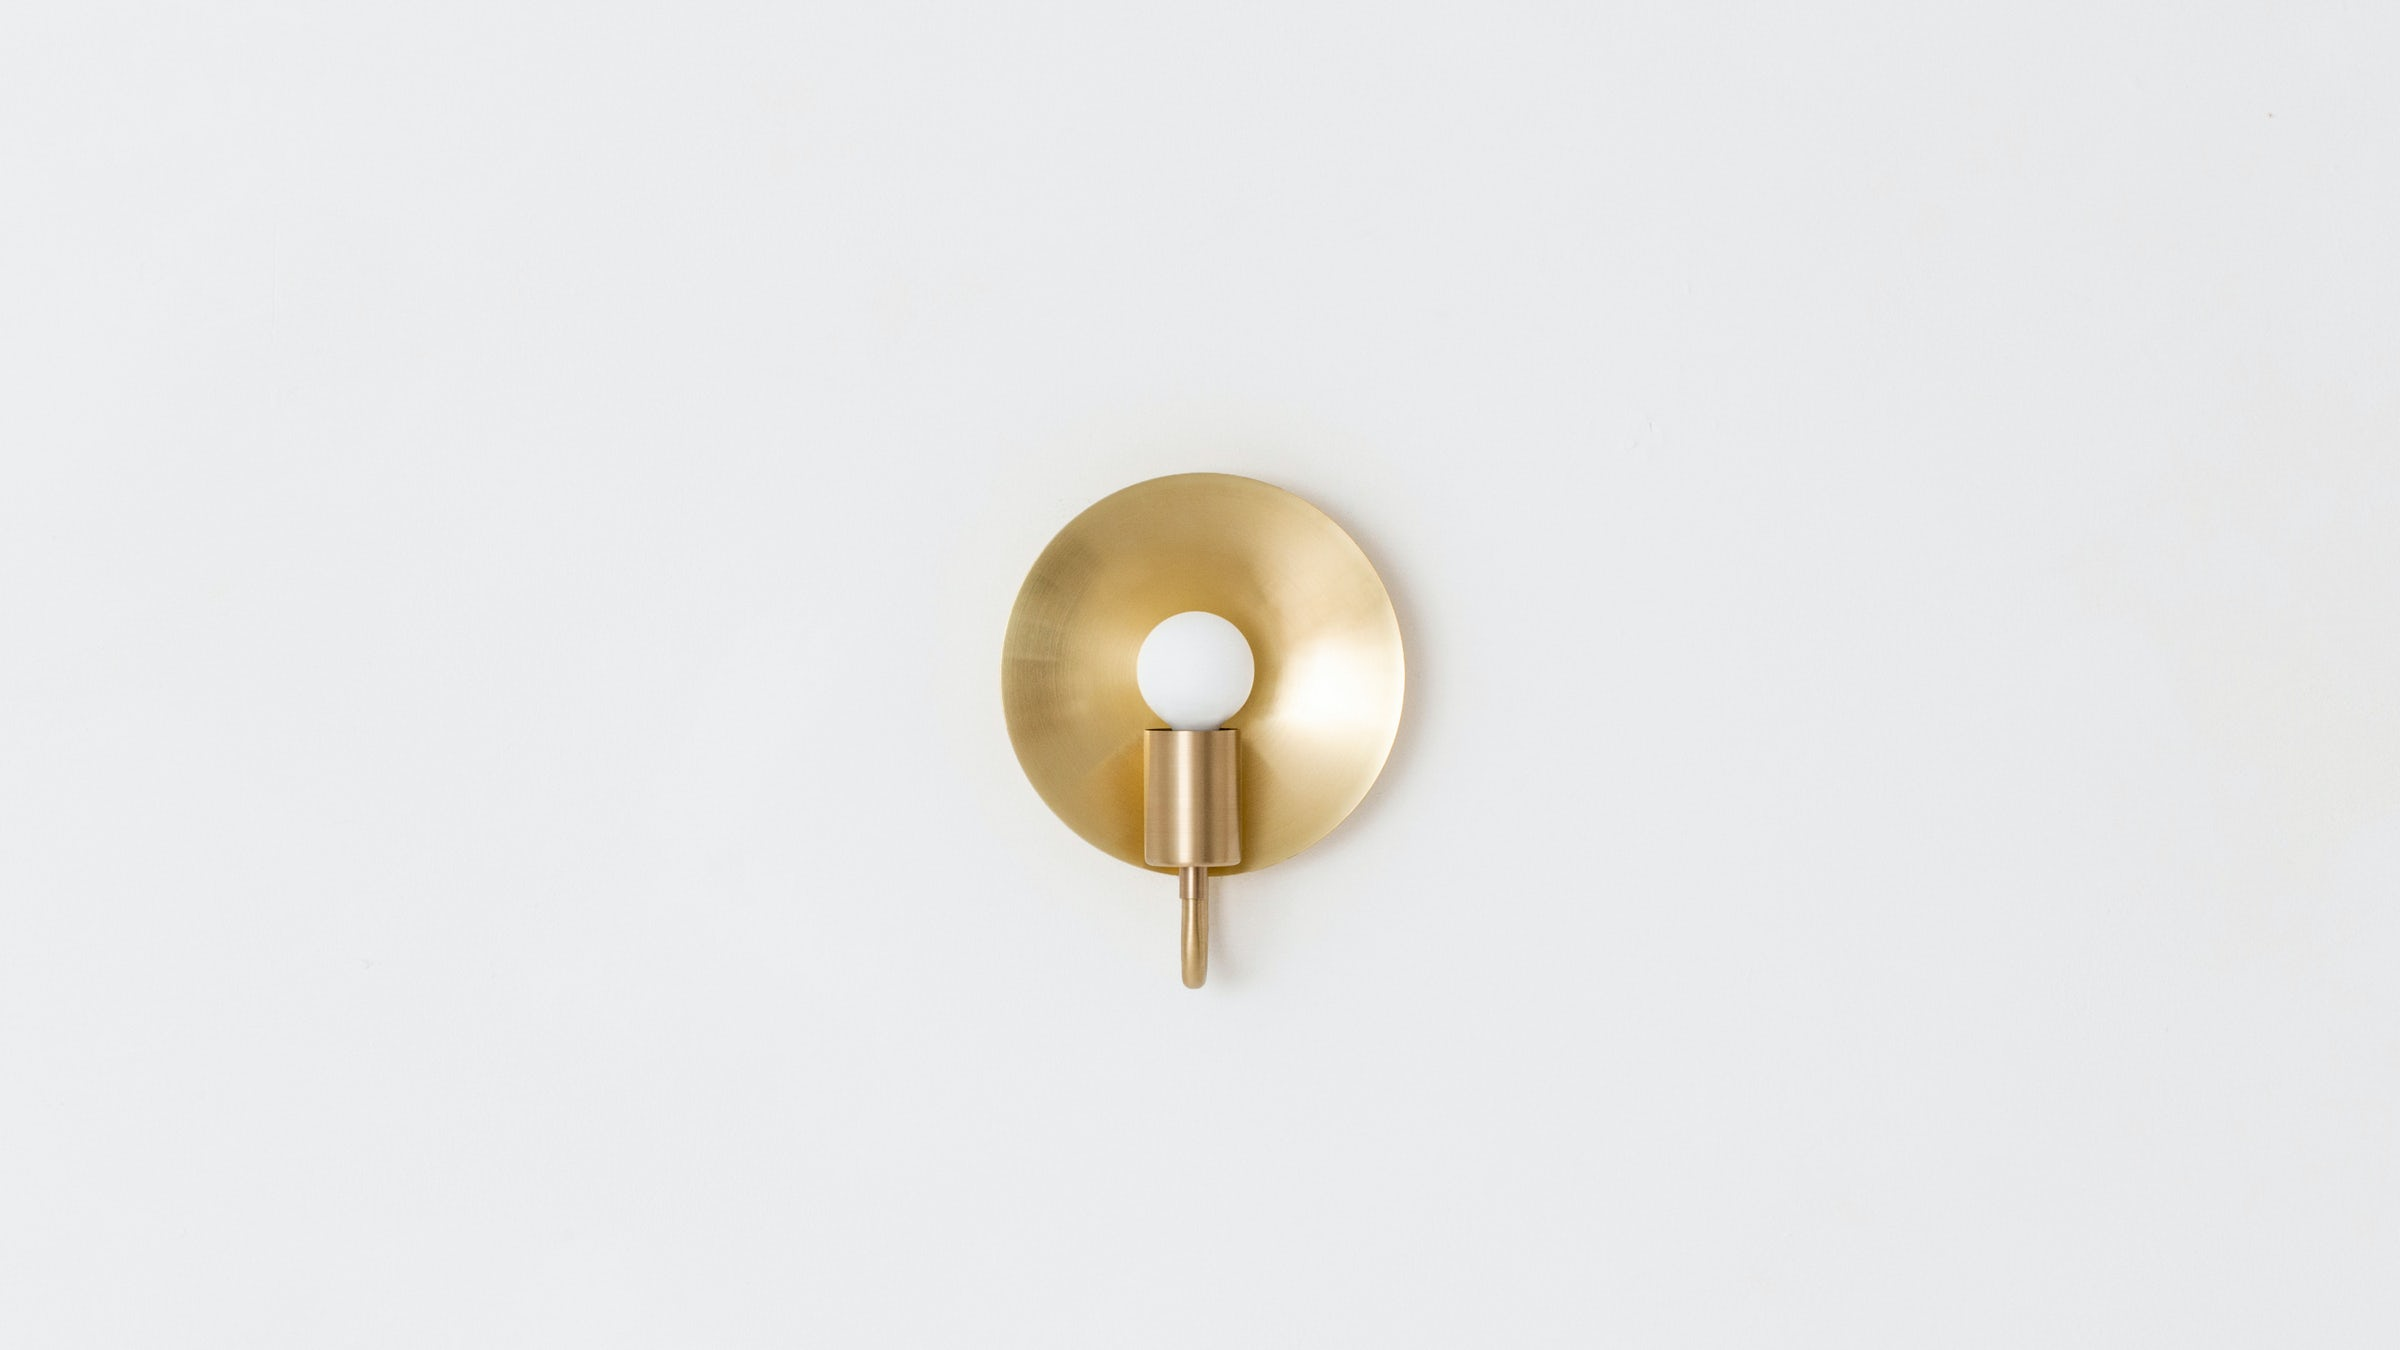 gallery image for Orbit ADA Sconce